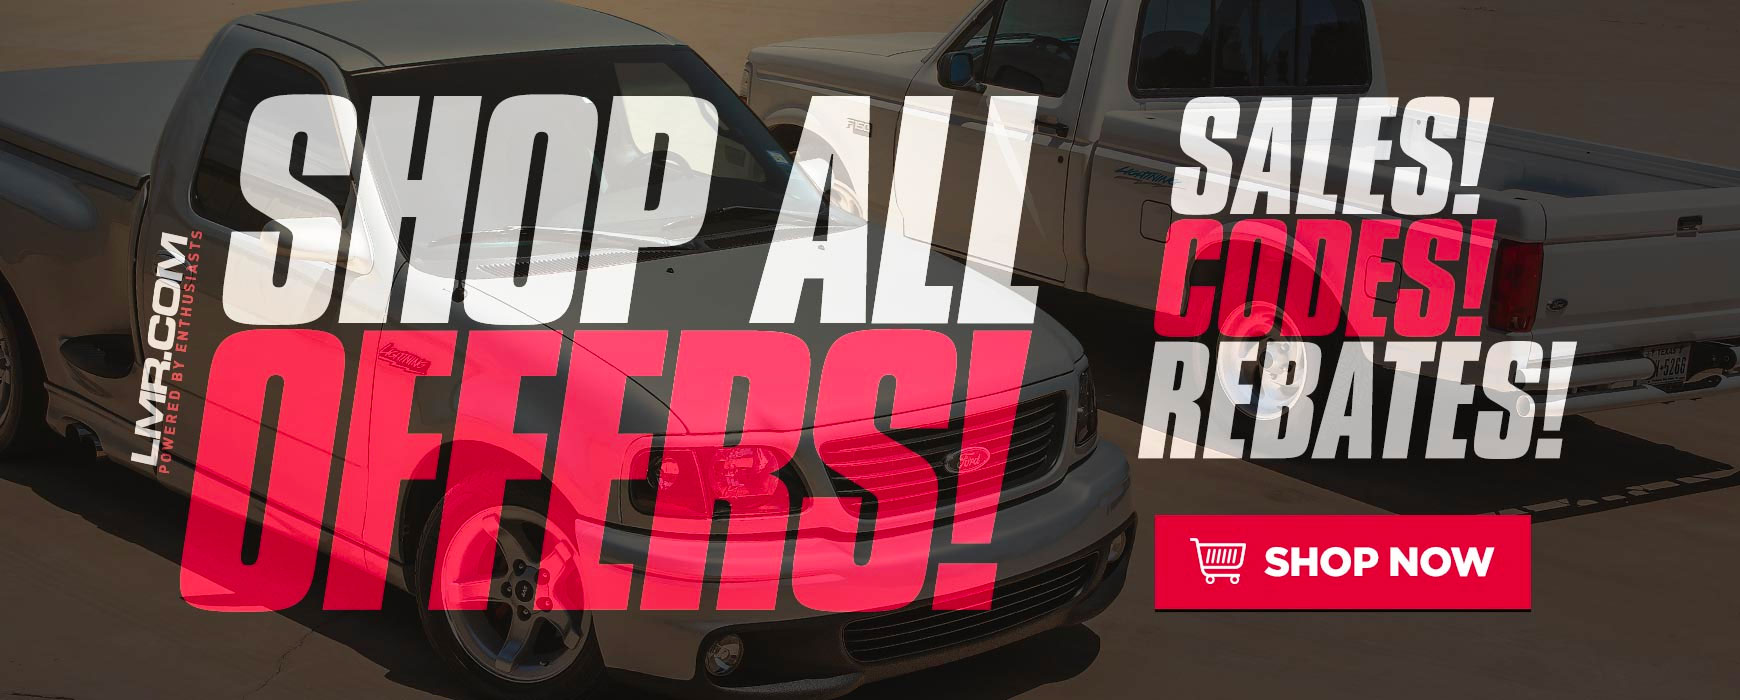 Ford Lightning Discount Codes & Sale Offers